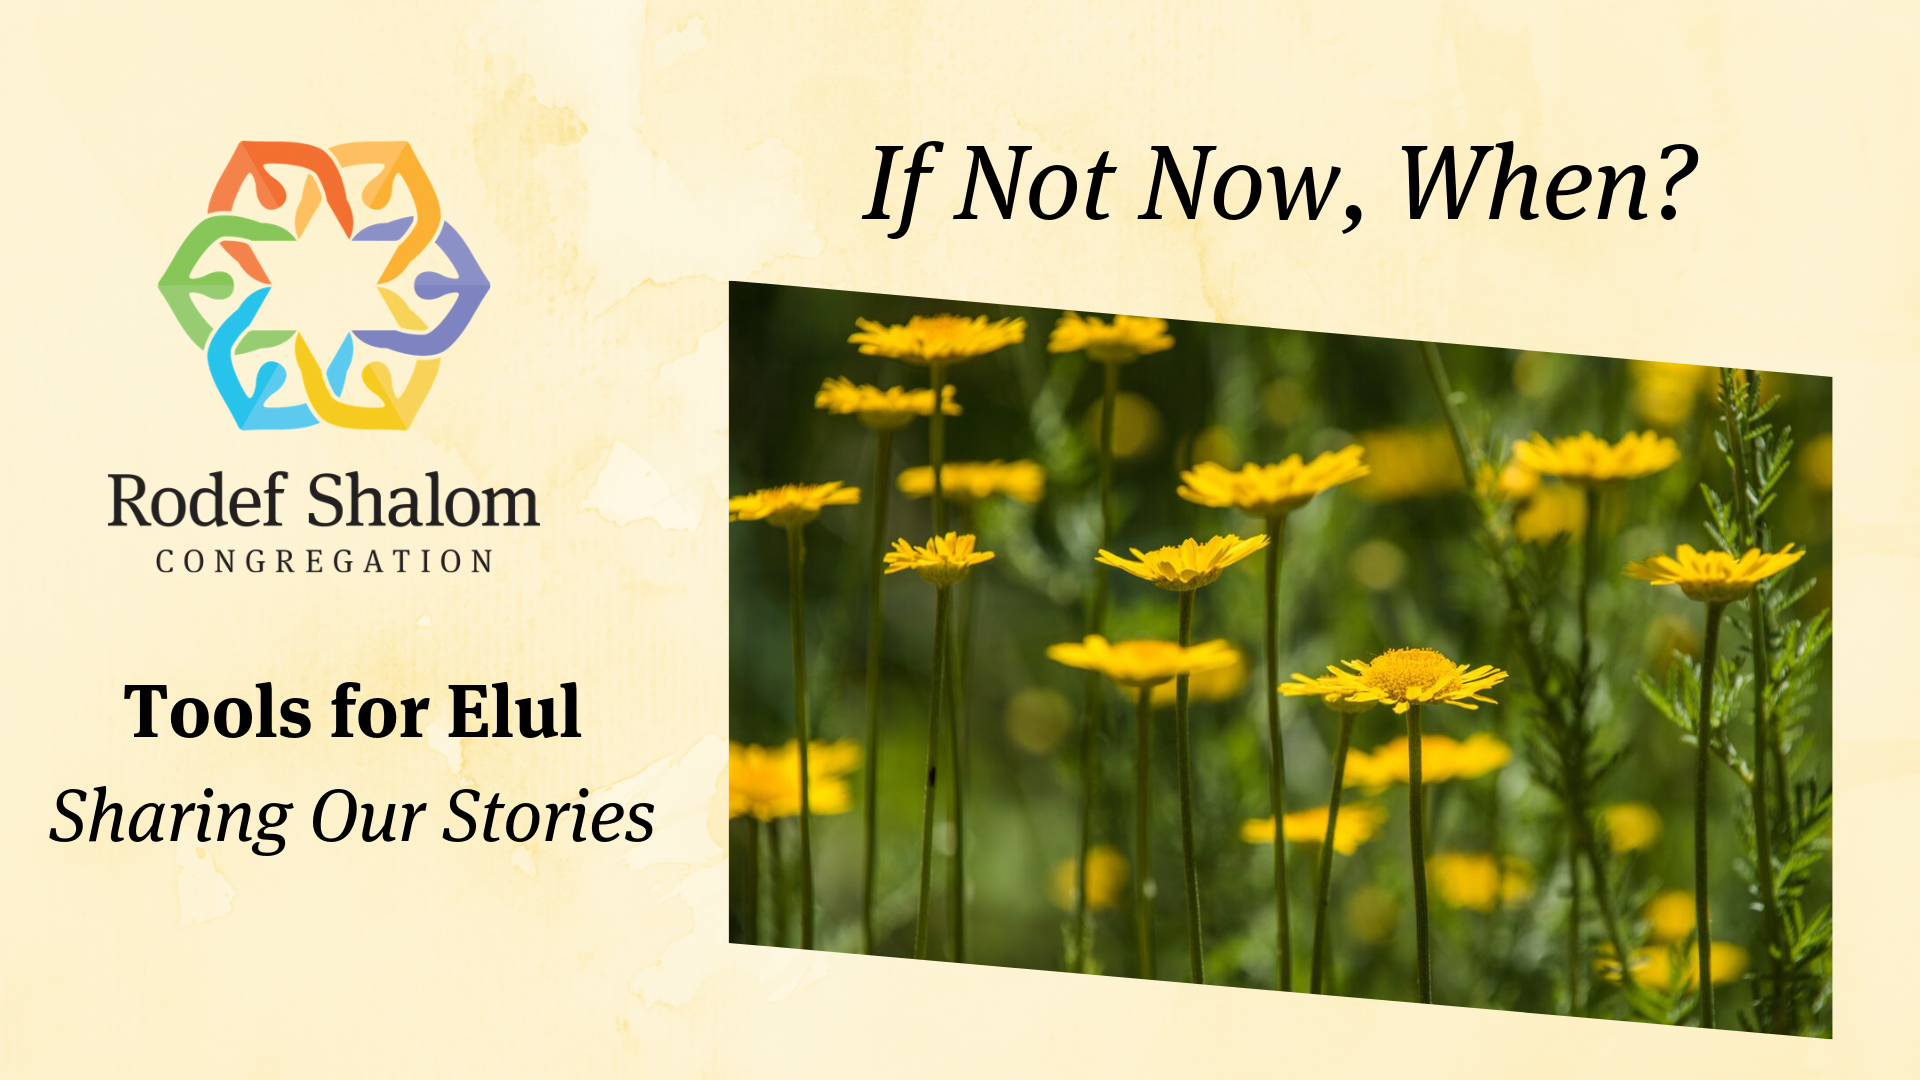 Tools for Elul Headers 8.27.19 (3).png